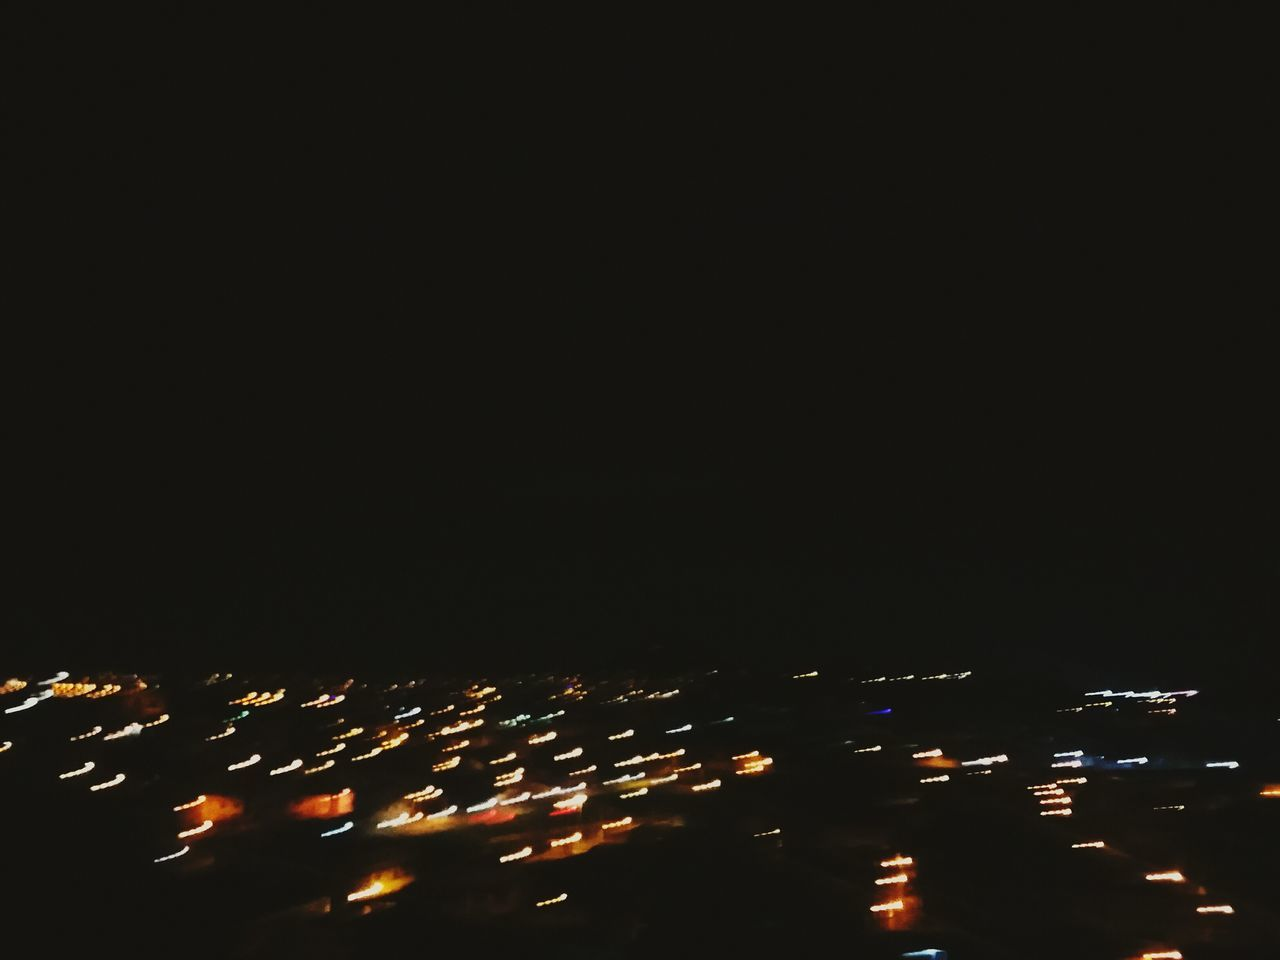 illuminated, night, copy space, city, no people, high angle view, outdoors, cityscape, architecture, black background, sky